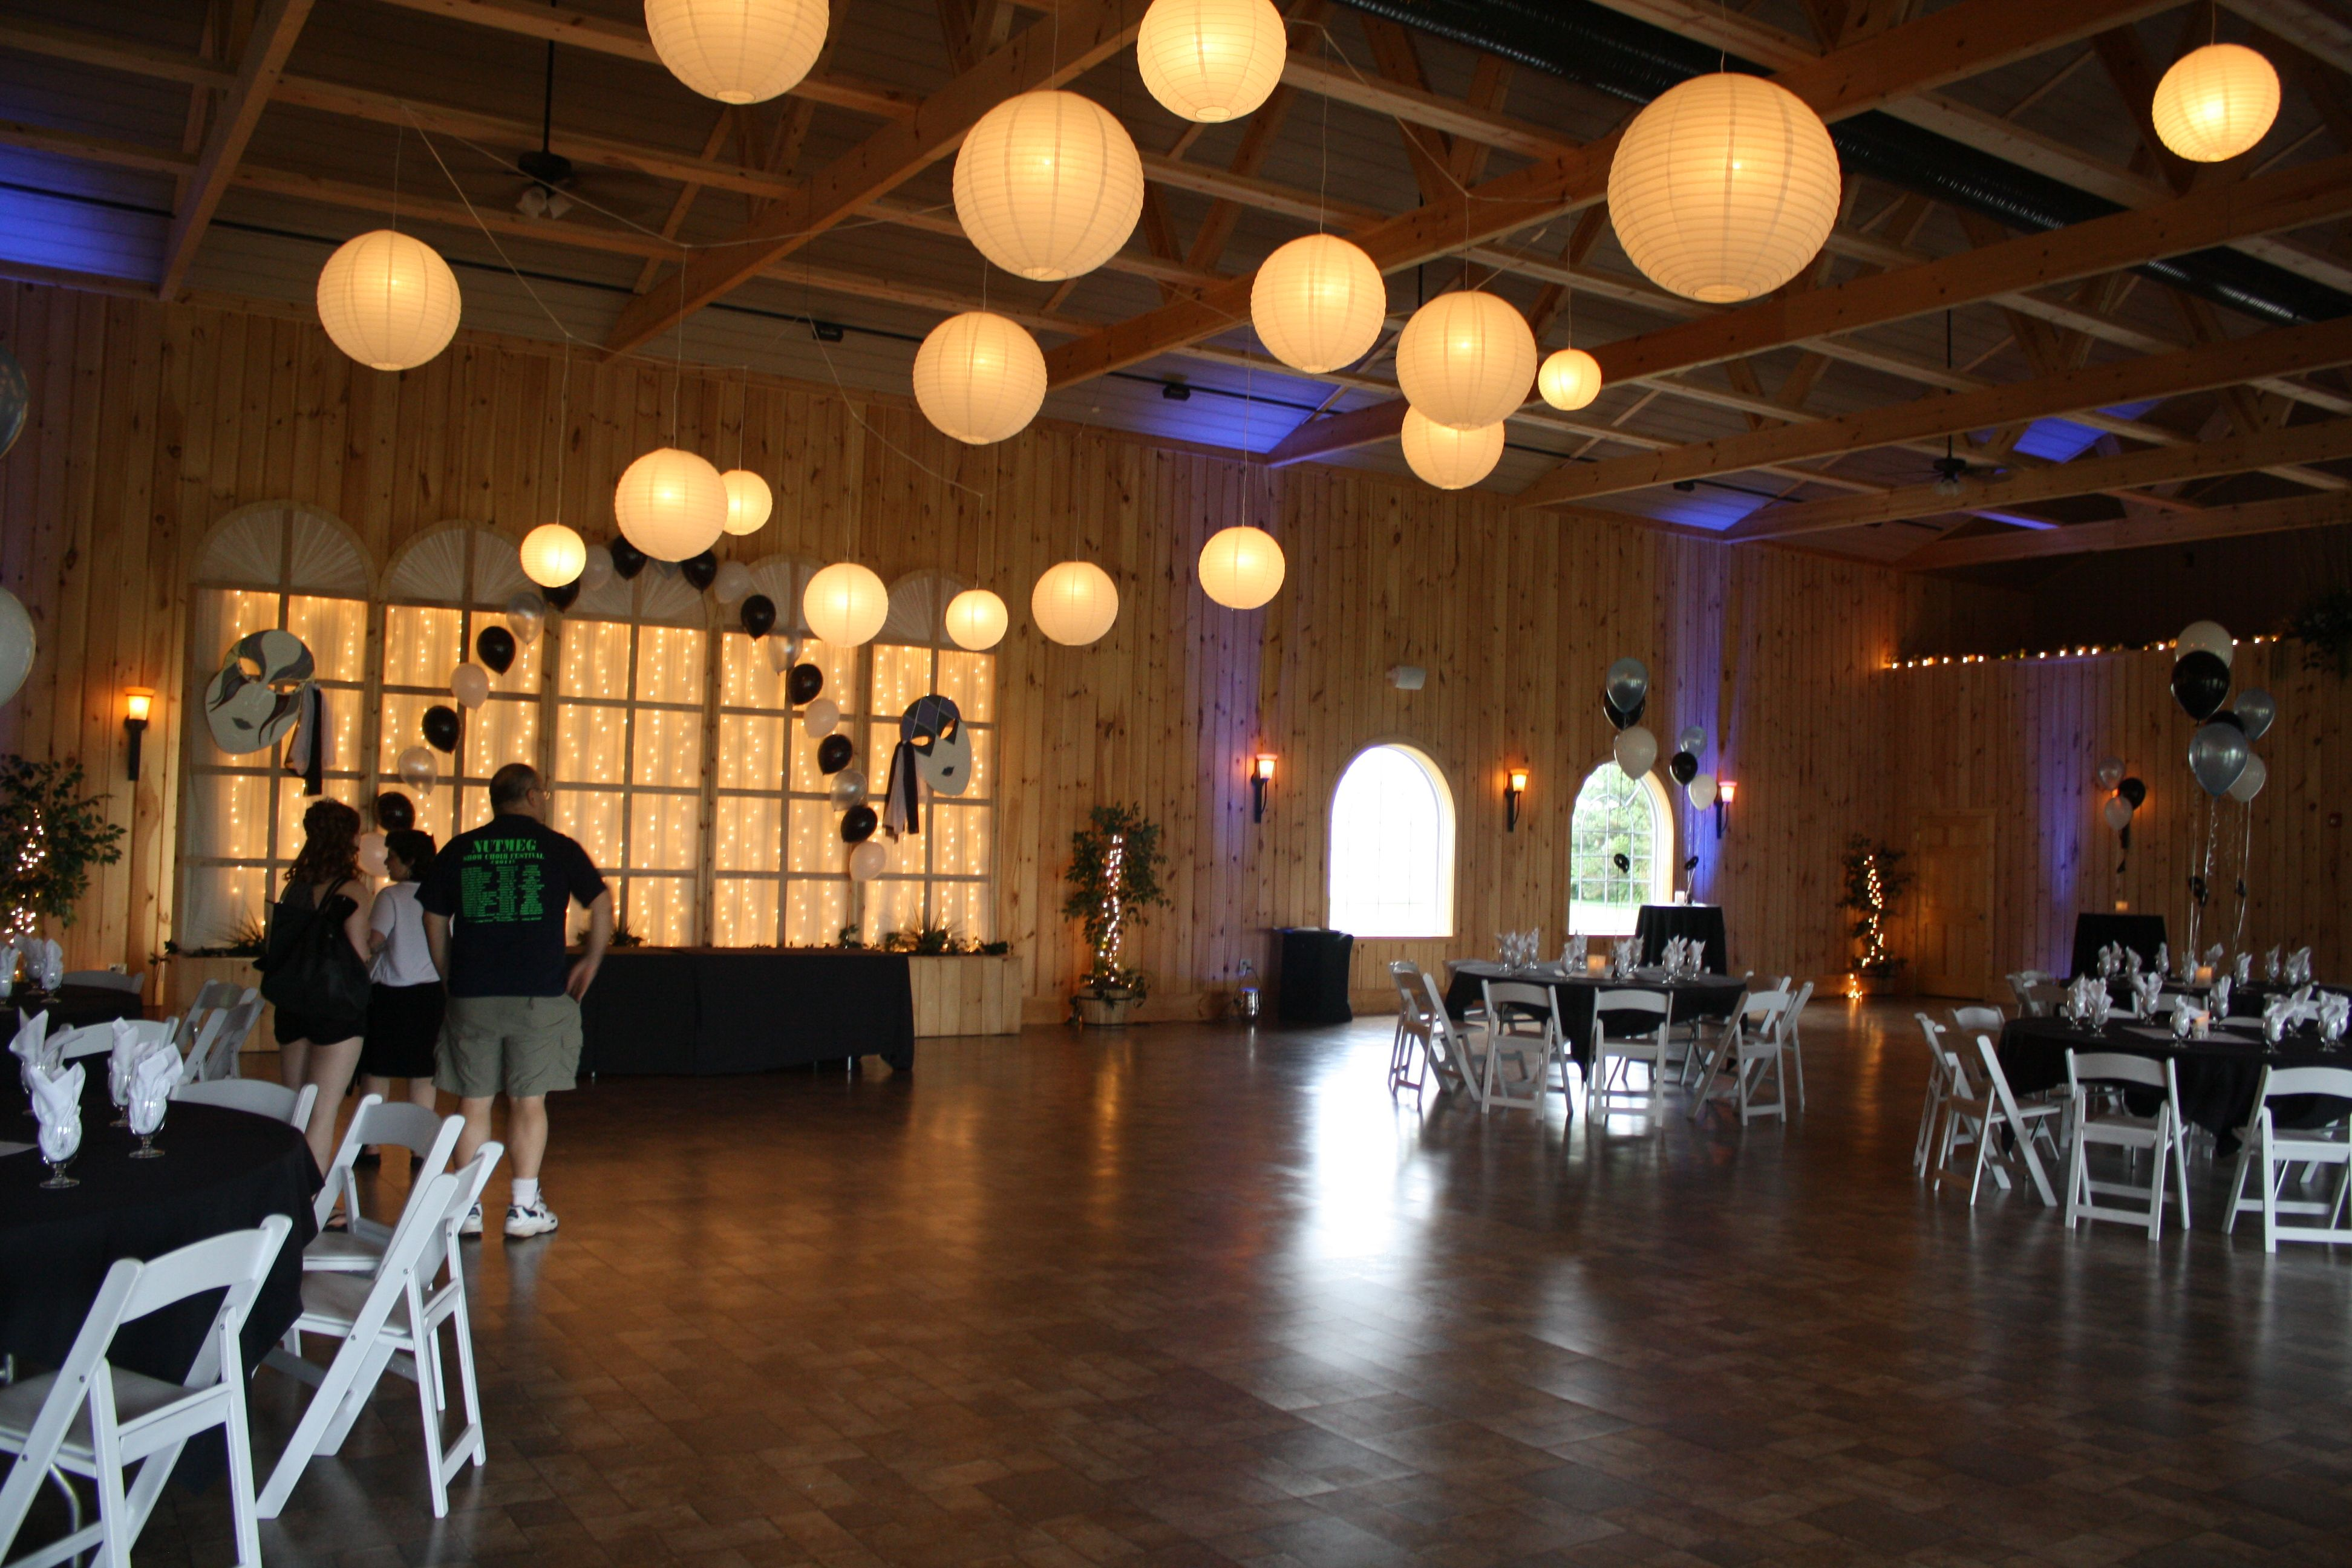 Lanterns Over The Dance Floor At A Masquerade Prom At